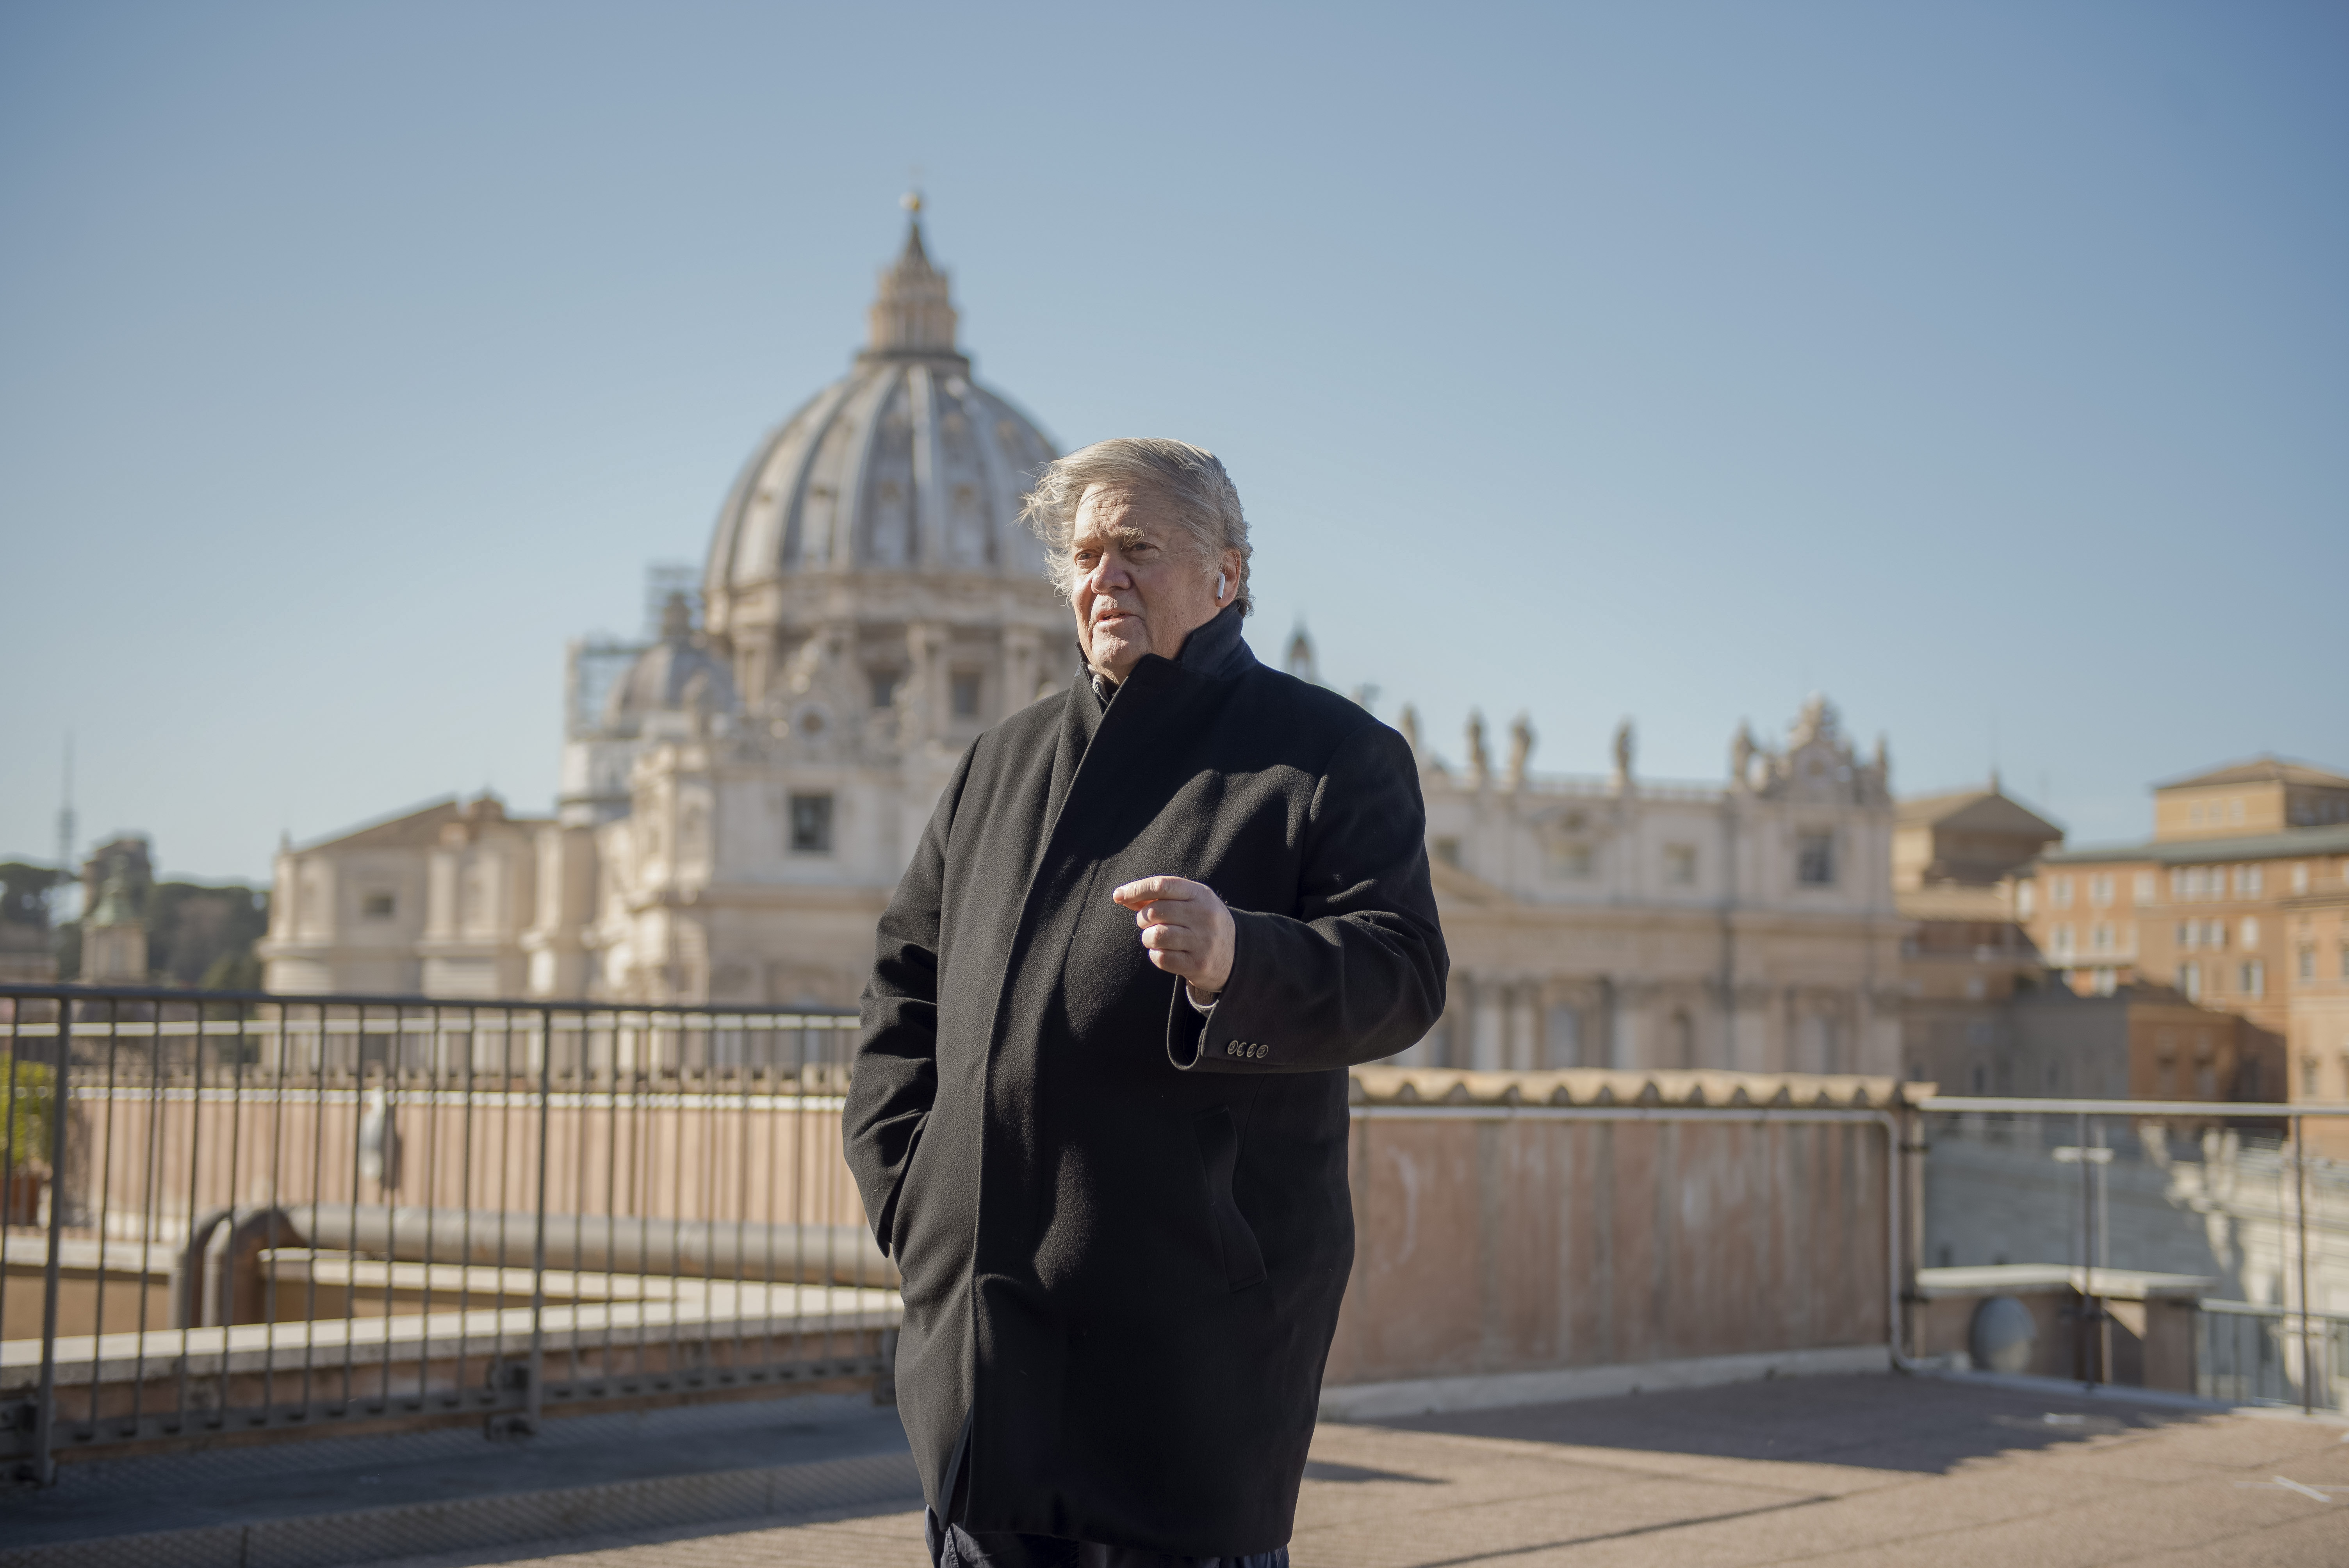 In this picture taken Saturday, Feb. 23, 2019, former White House strategist Steve Bannon poses for portraits during a break of his media activities on a terrace overlooking St. Peter's Square at the Vatican. (AP Photo/Marco Bonomo)